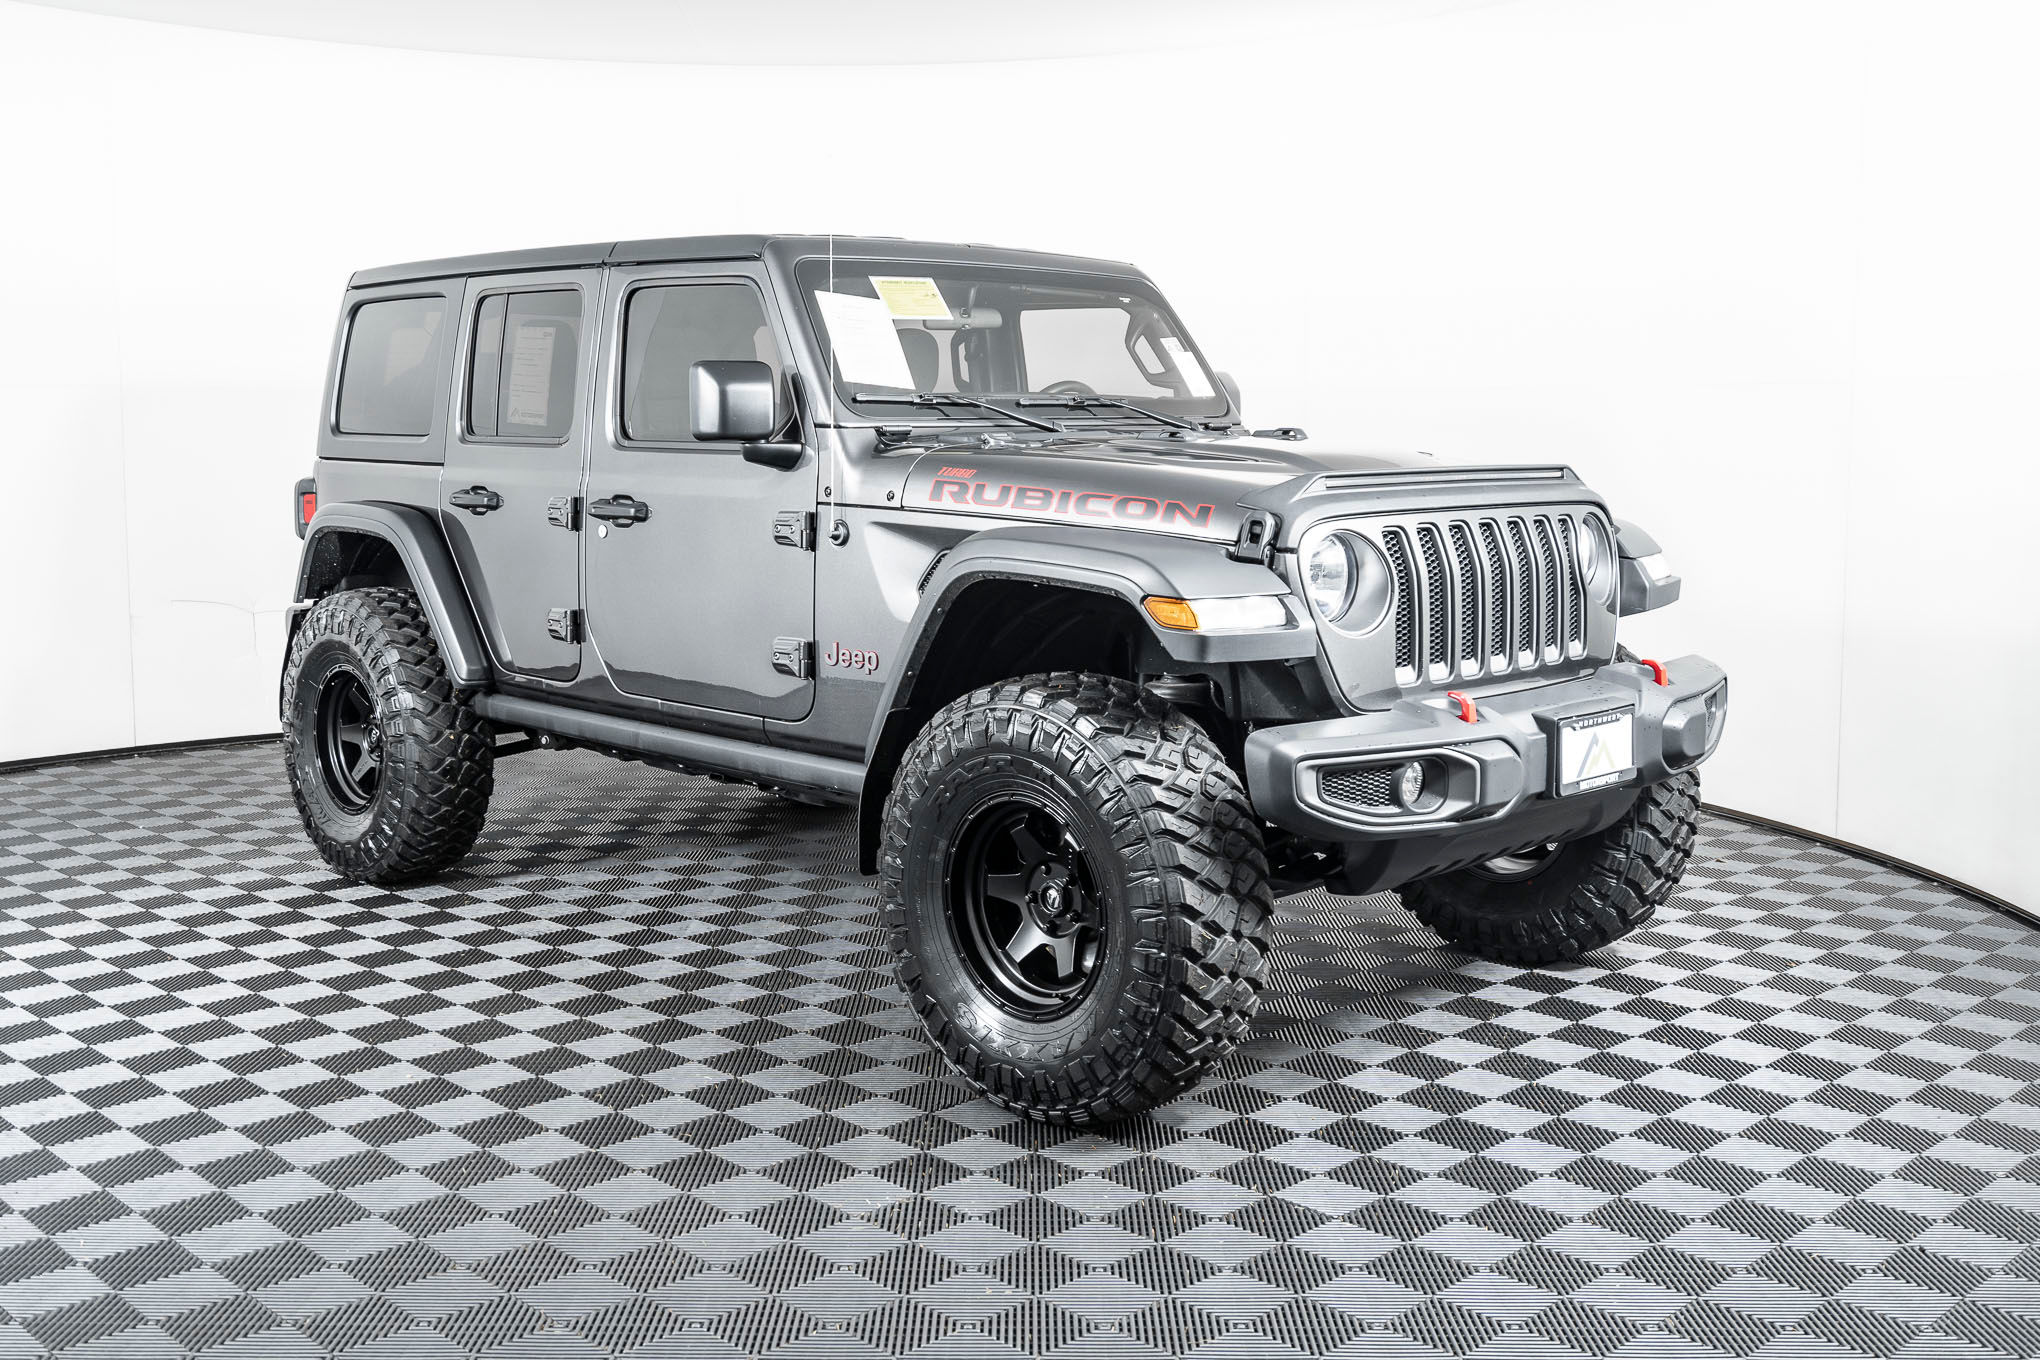 Used Lifted 2020 Jeep Wrangler Unlimited Rubicon 4x4 Suv For Sale Northwest Motorsport